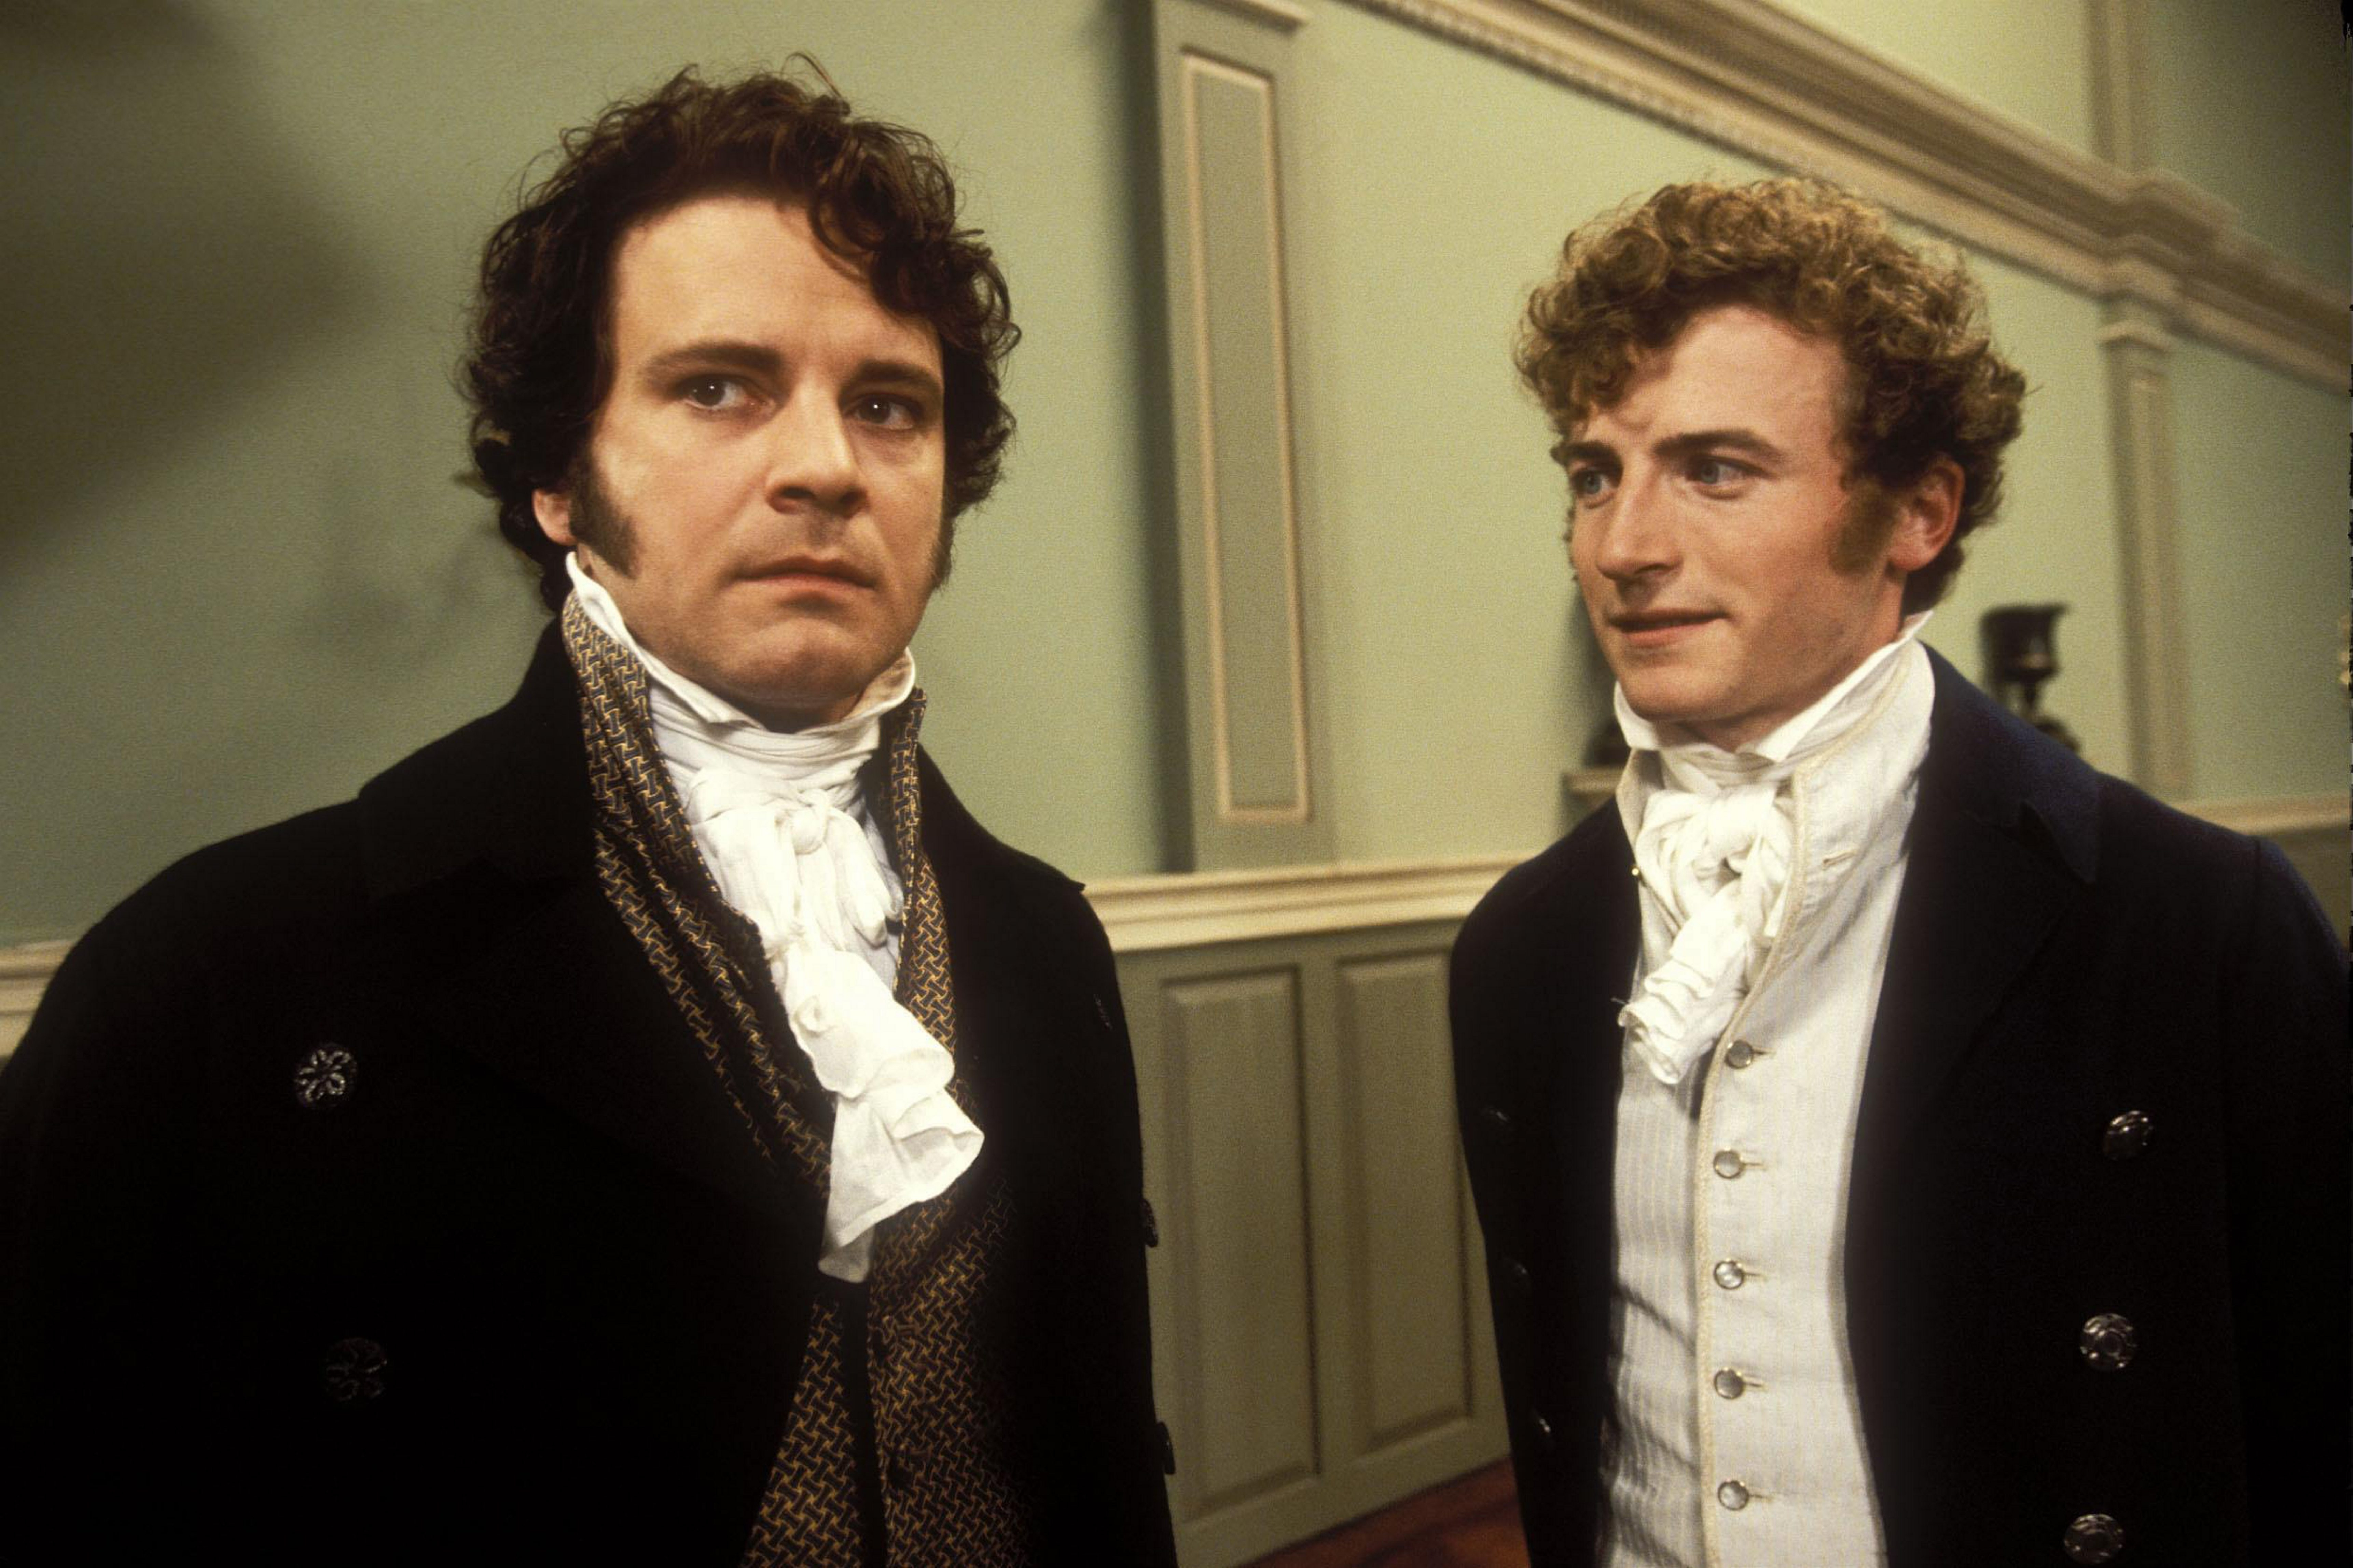 """Colin Firth, left, was Mr. Darcy and Crispin Bonham Carter played his friend Bingley in the BBC production of """"Pride and Prejudice."""""""